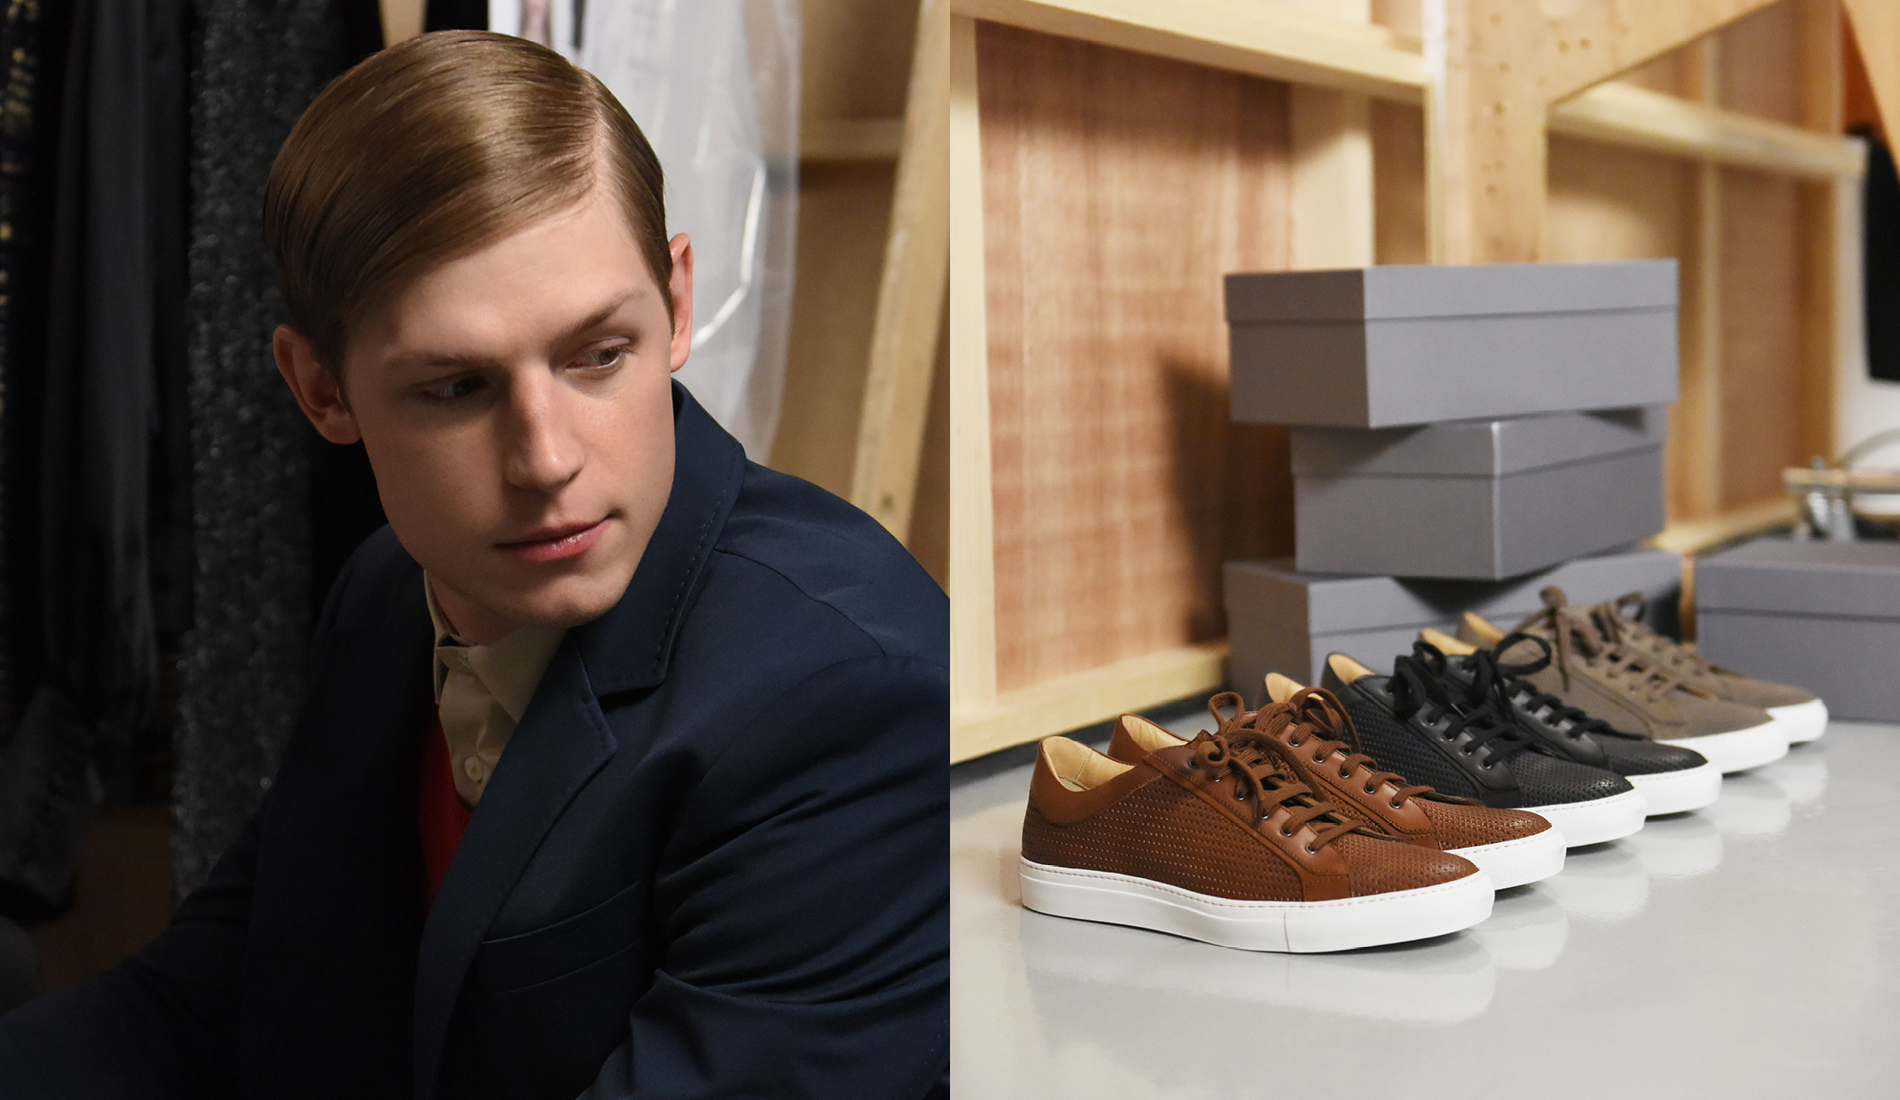 Shot of model and Aquatalia shoes for #MyAquatalia created by DTE Studio